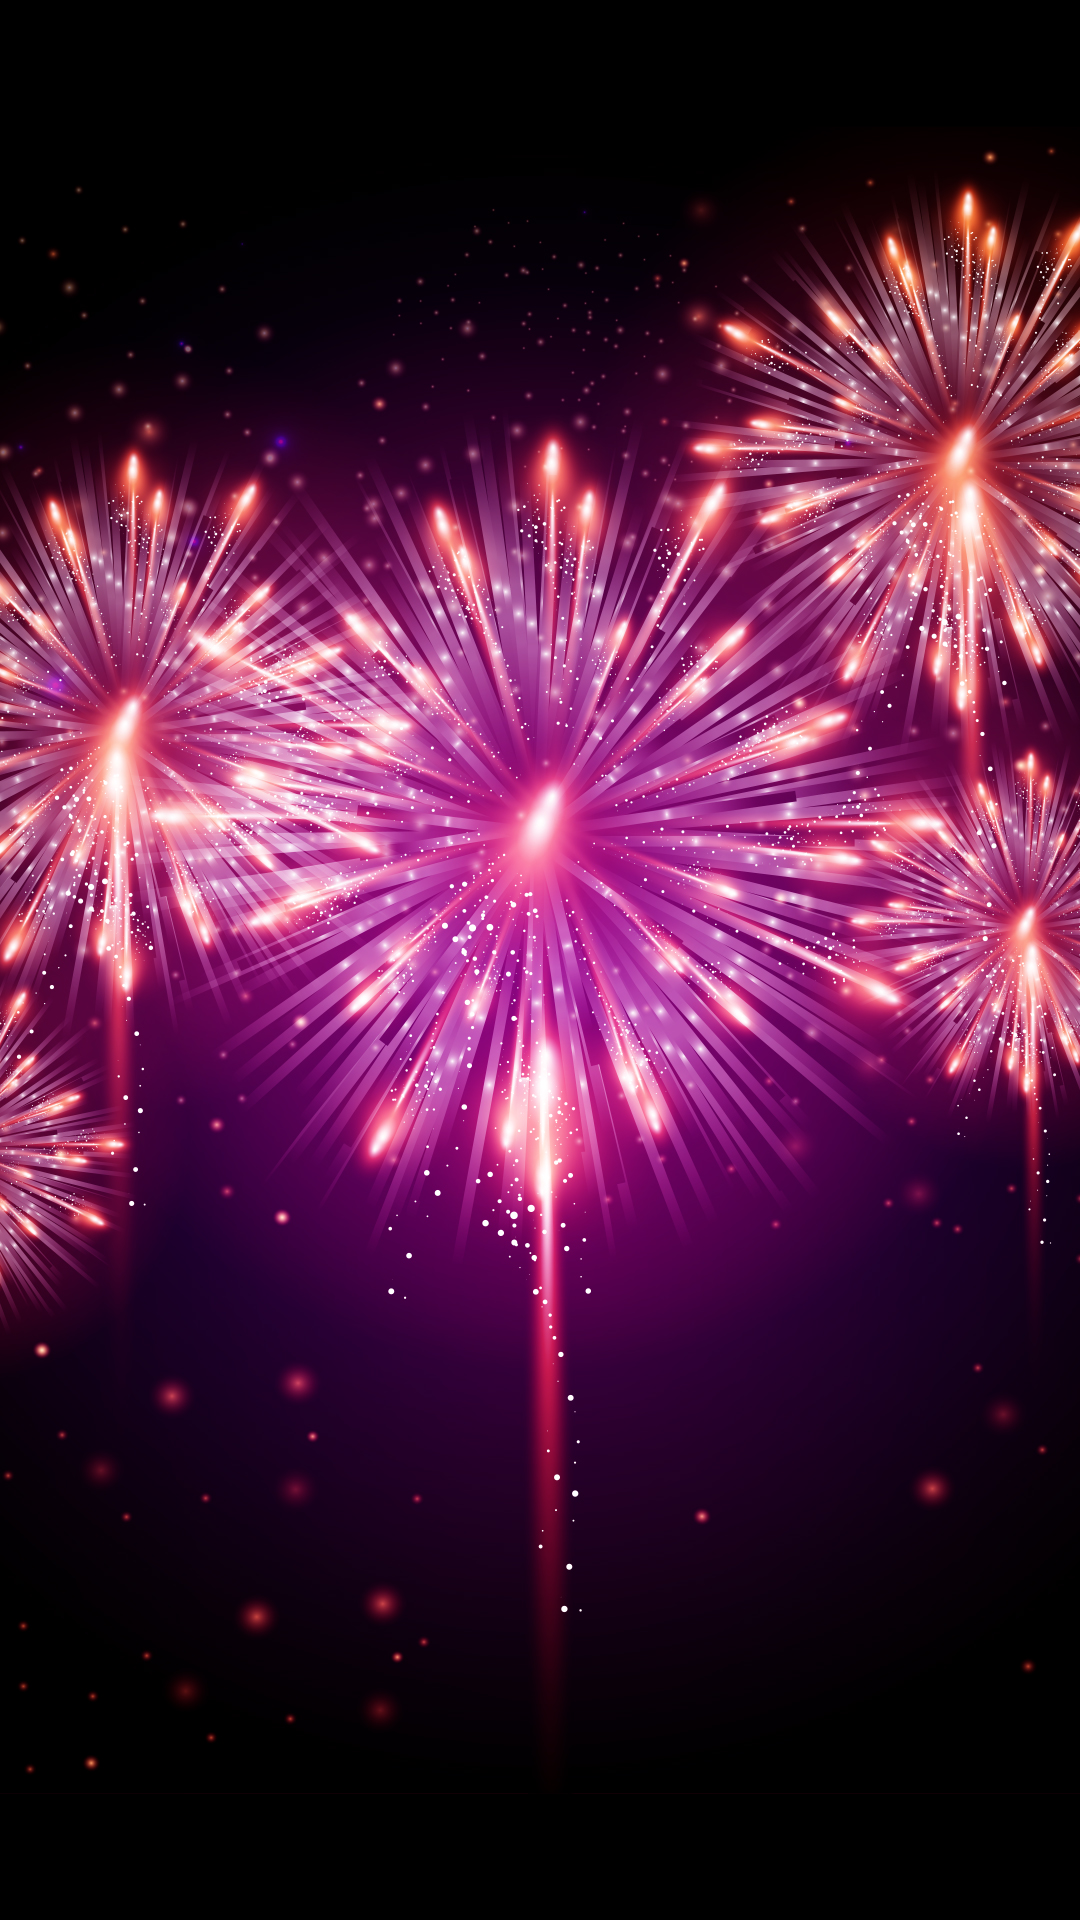 pink fireworks hd wallpaper for your mobile